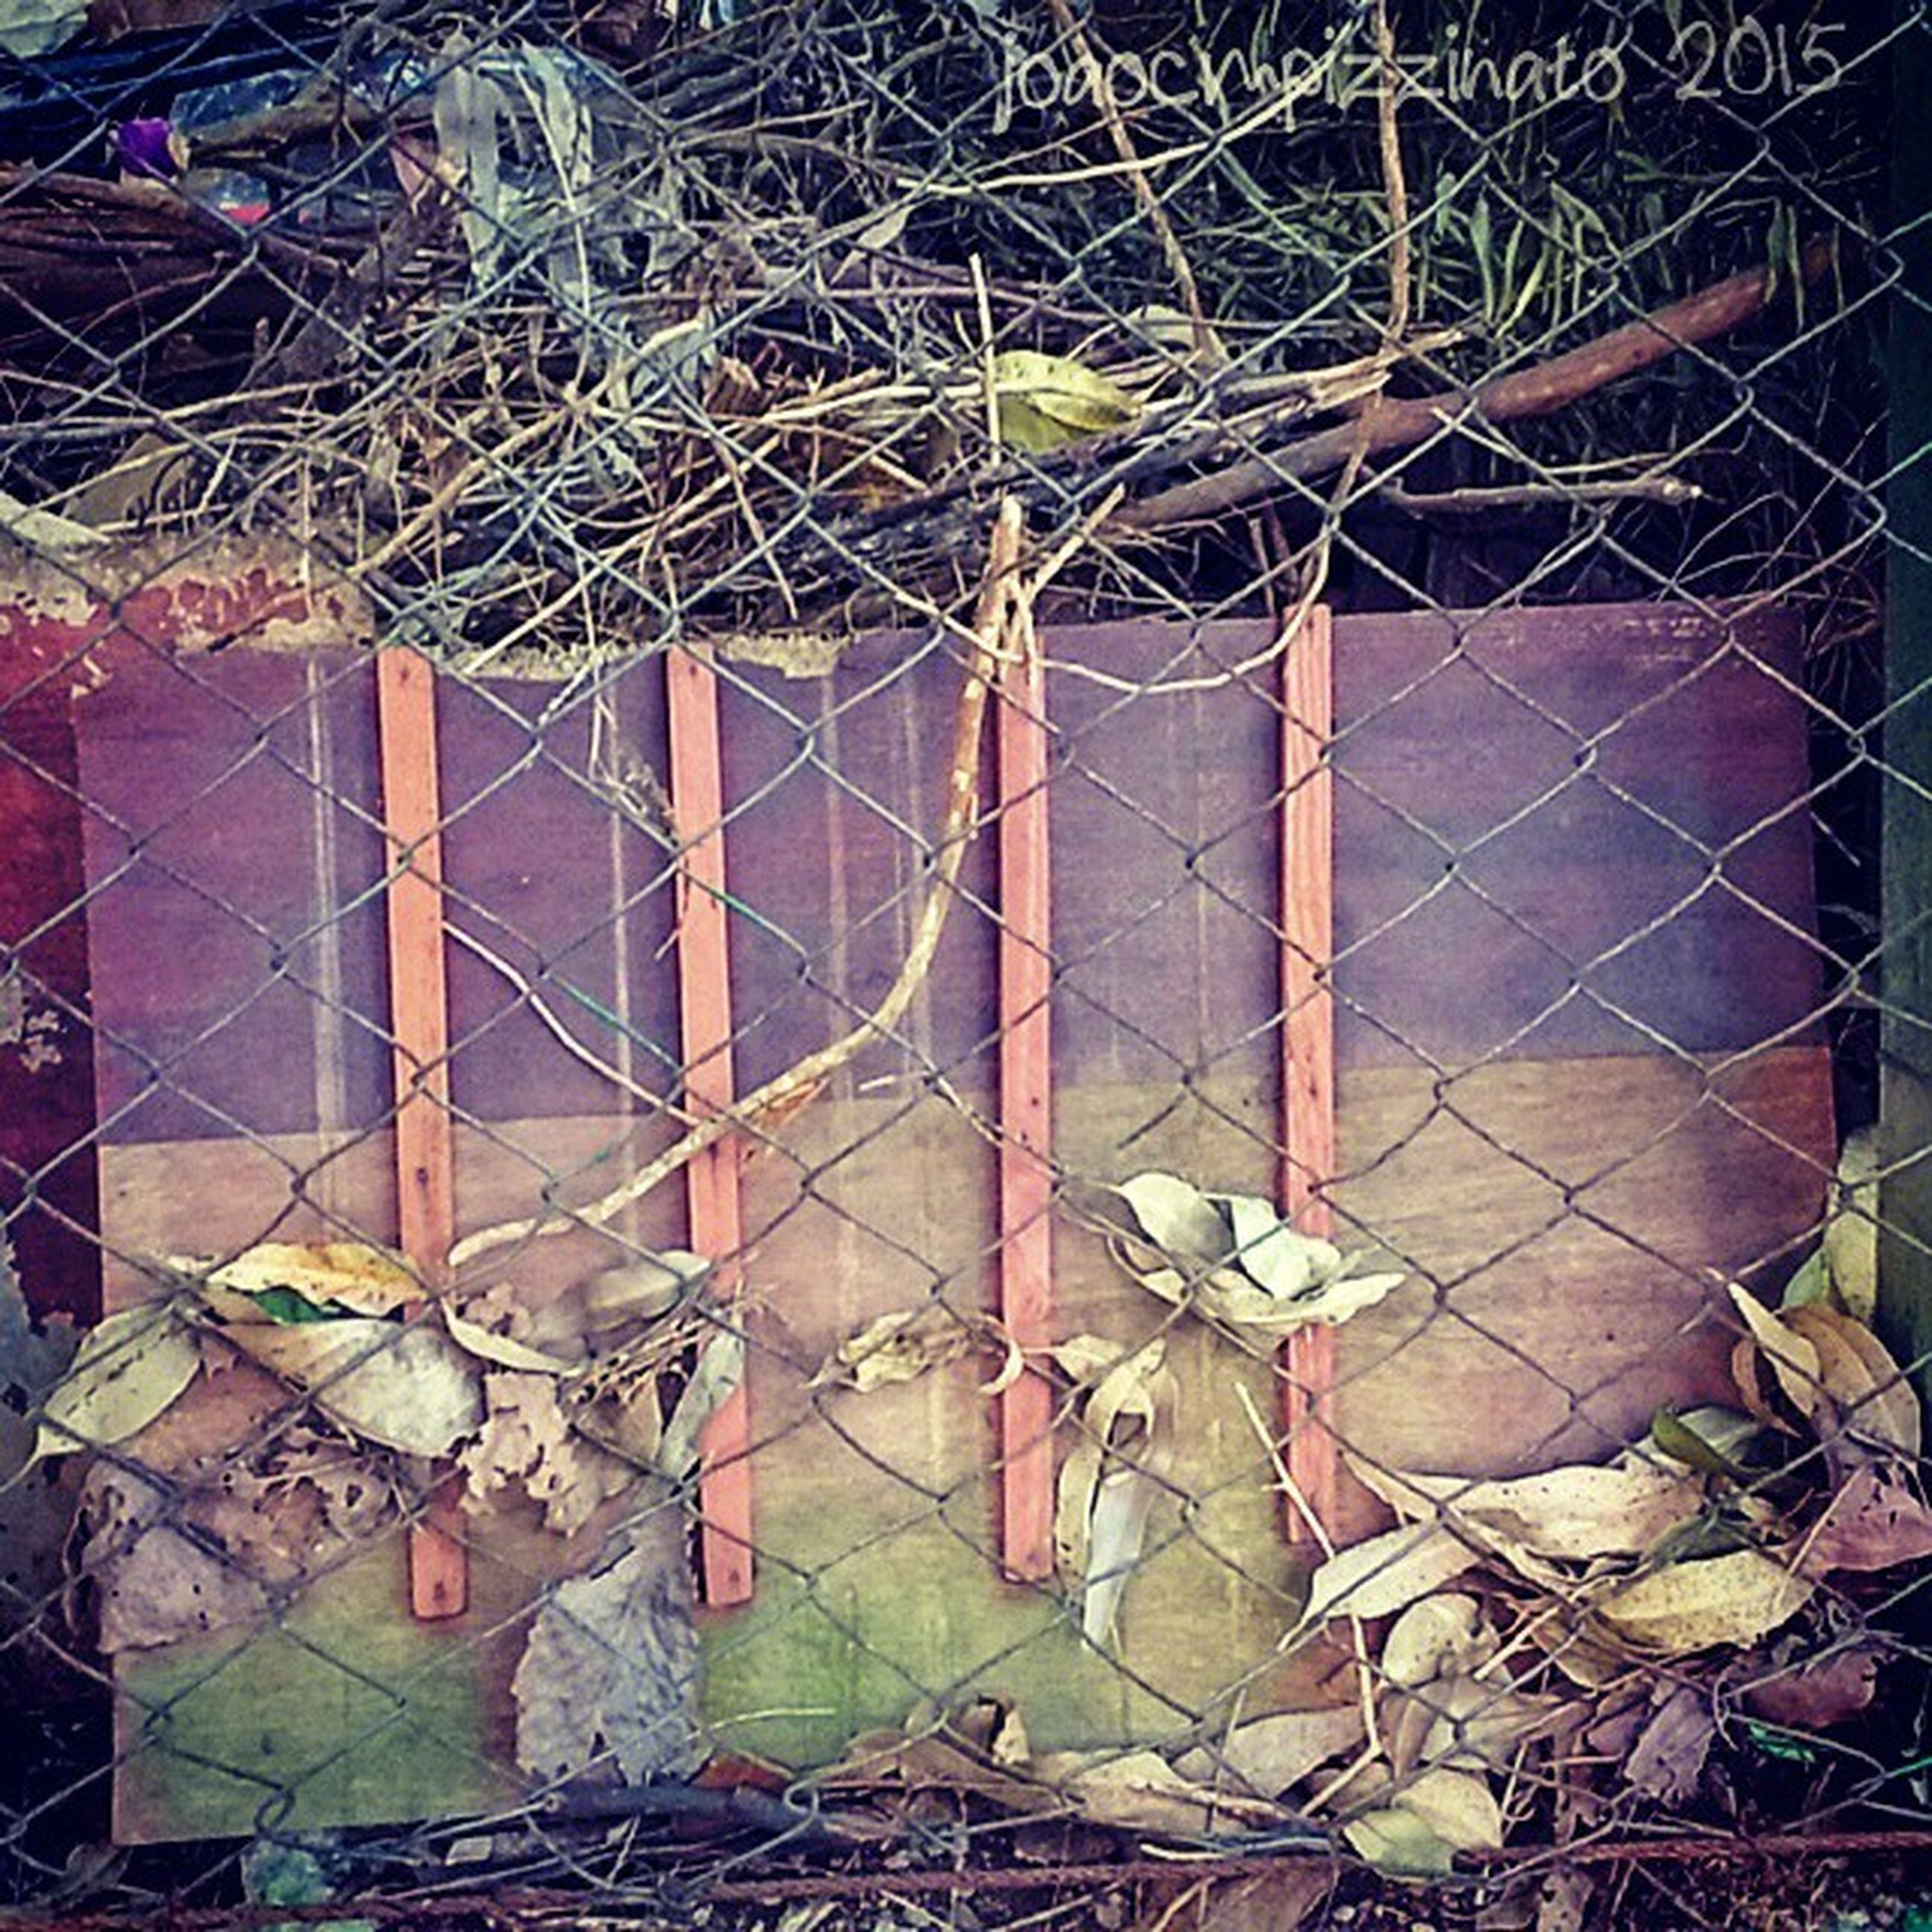 metal, abandoned, obsolete, damaged, chainlink fence, protection, security, safety, no people, outdoors, fence, day, metallic, wall - building feature, built structure, deterioration, old, broken, rusty, building exterior